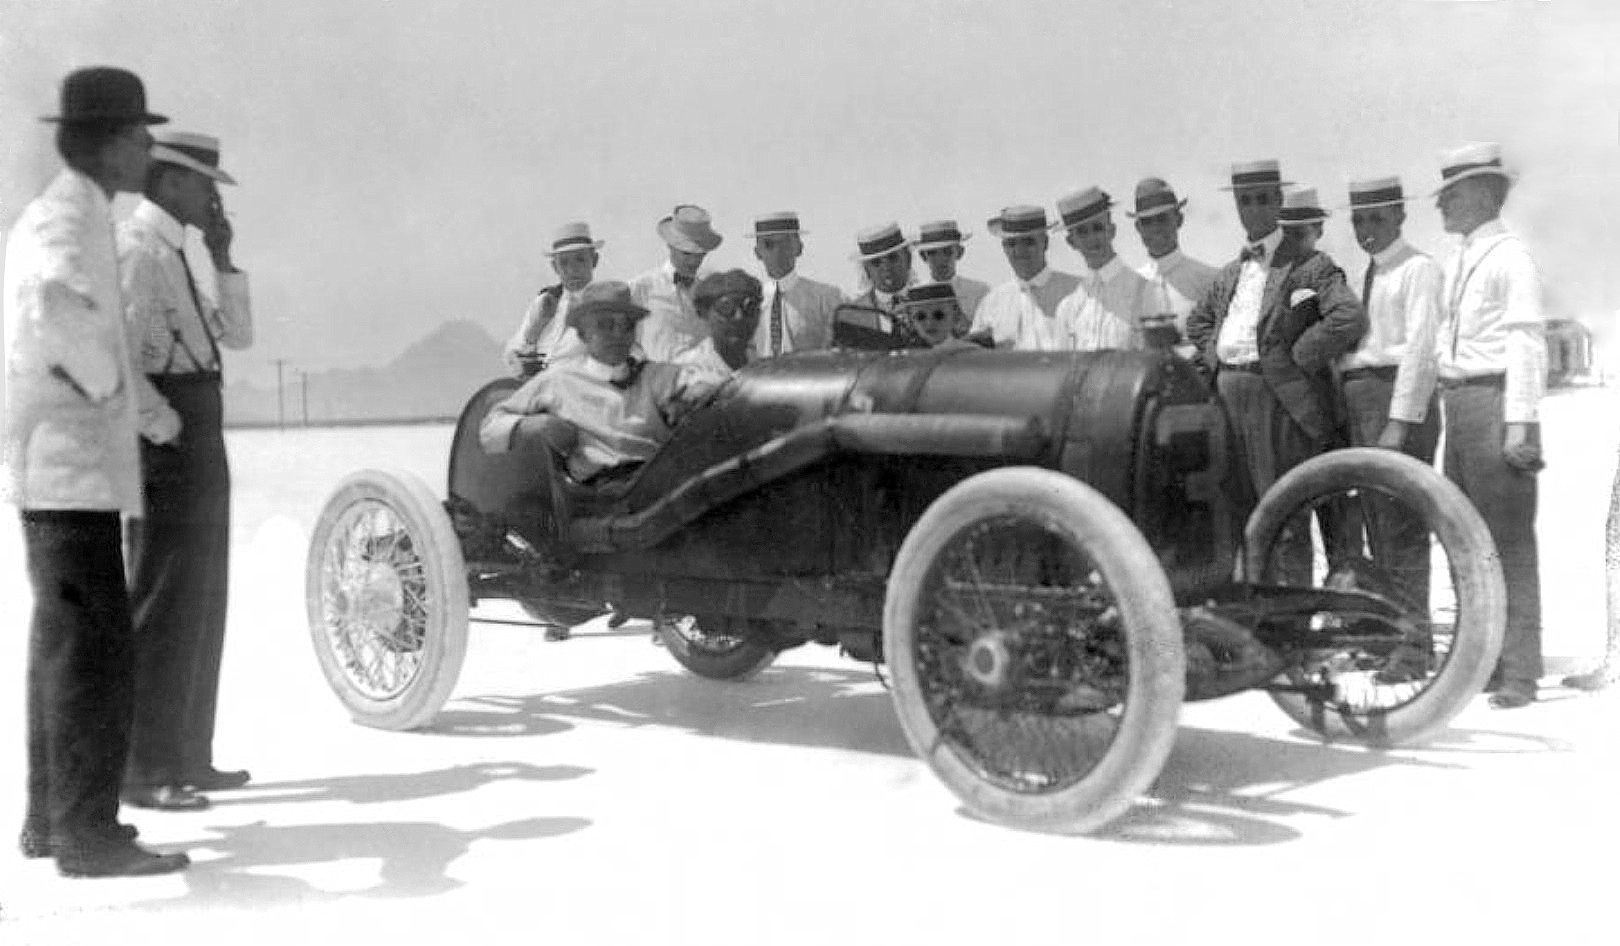 STARTING TOMORROW: The Salt Flats Of Salduro – Our Incredible Series Documenting The First Racing At Bonneville, 100 Years Ago